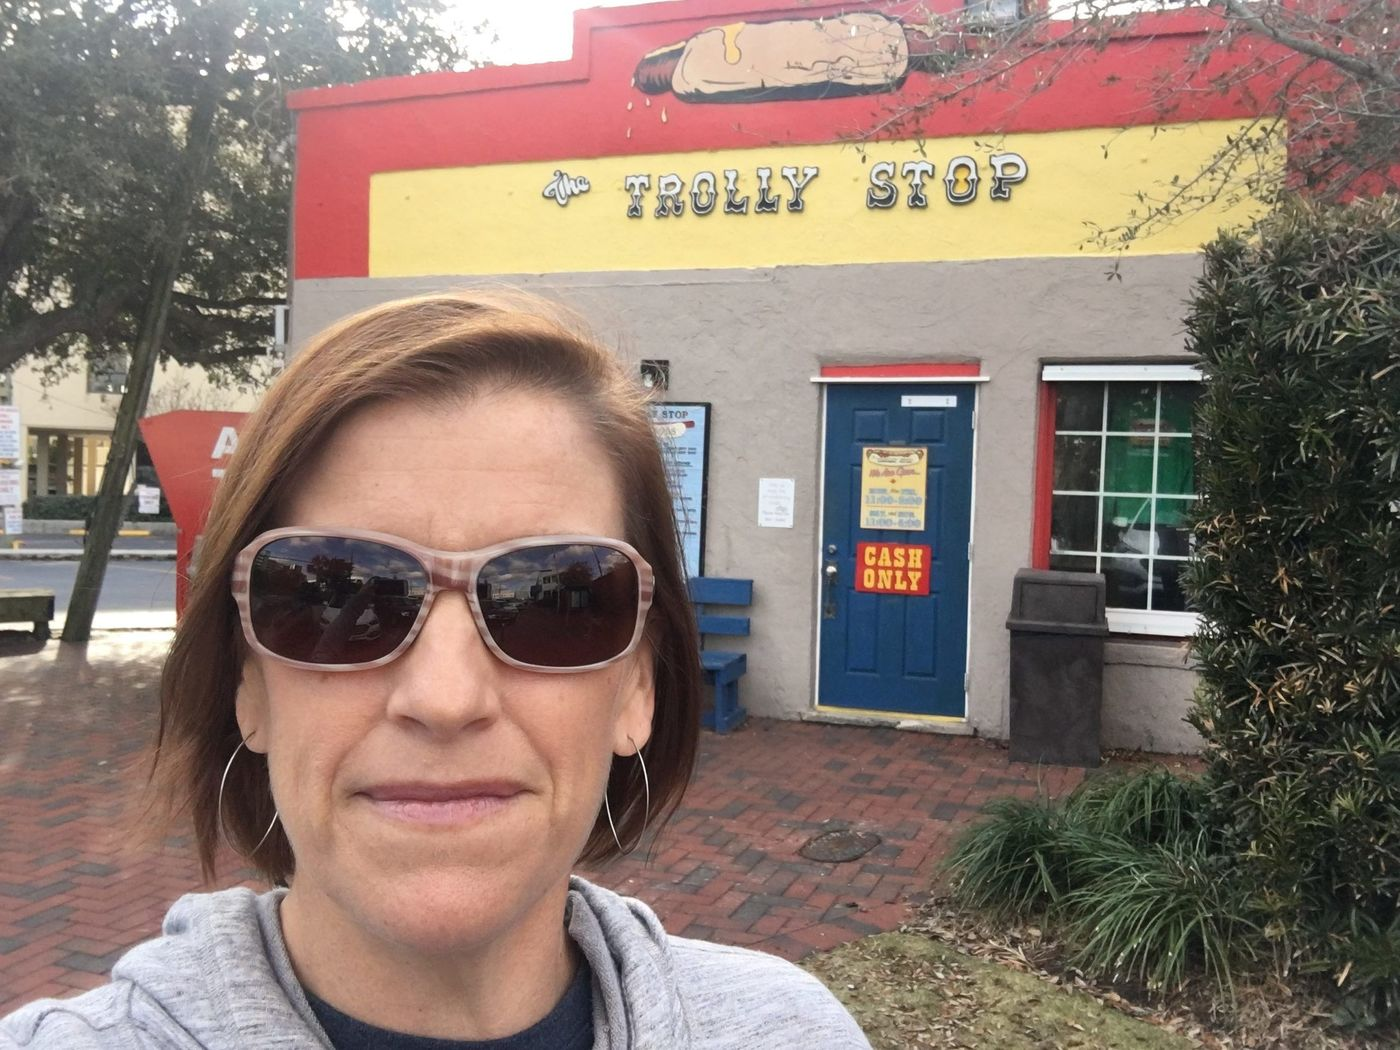 My Favorite Places - Trolly Stop Hot Dogs